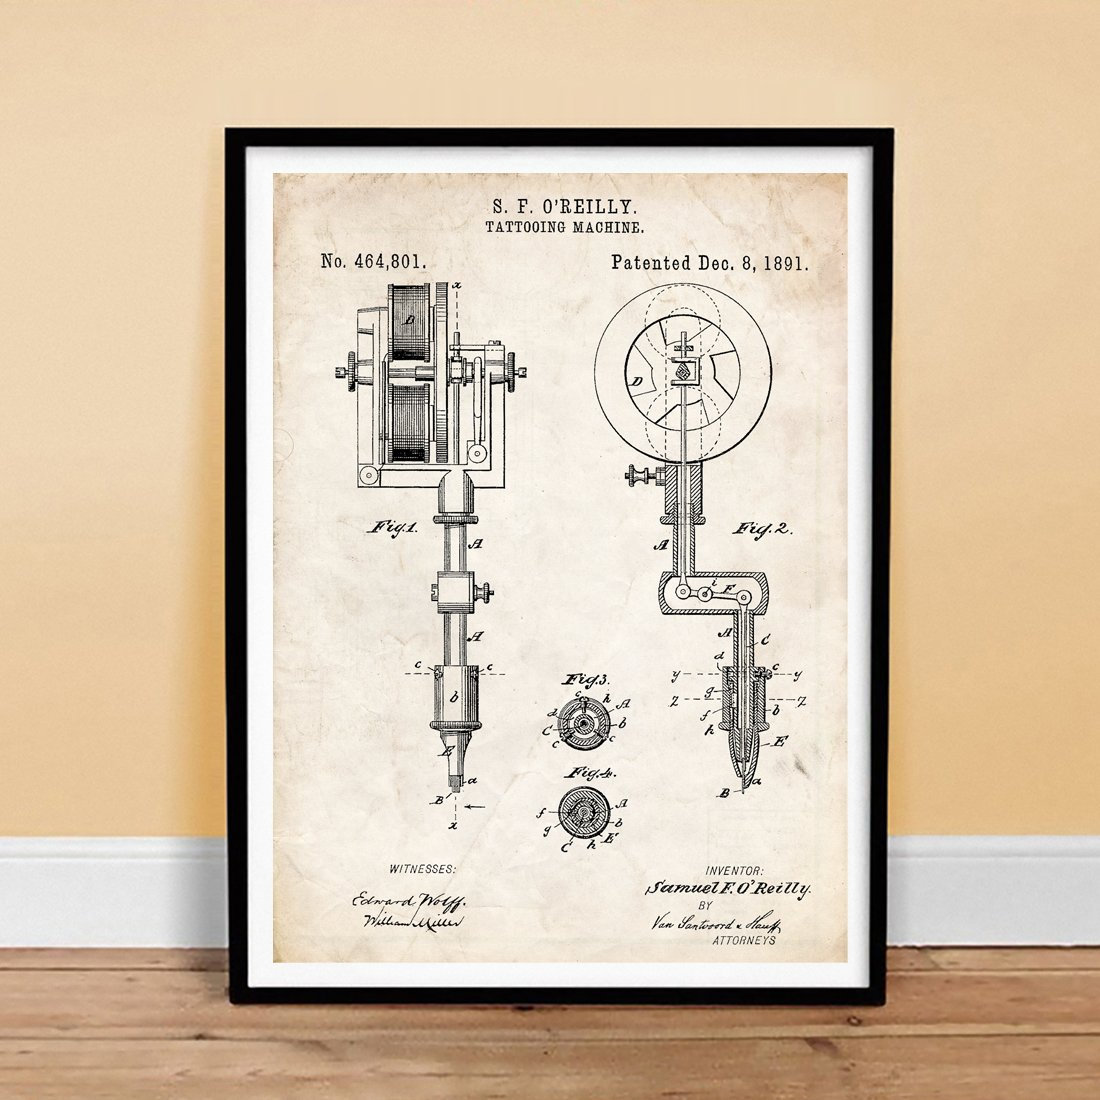 "Amazon.com: TATTOOING MACHINE INVENTION PATENT ART PRINT TATTOO O'REILLY  INK BODY ART 1891 GIFT UNFRAMED (5"" x 7""): Posters & Prints"